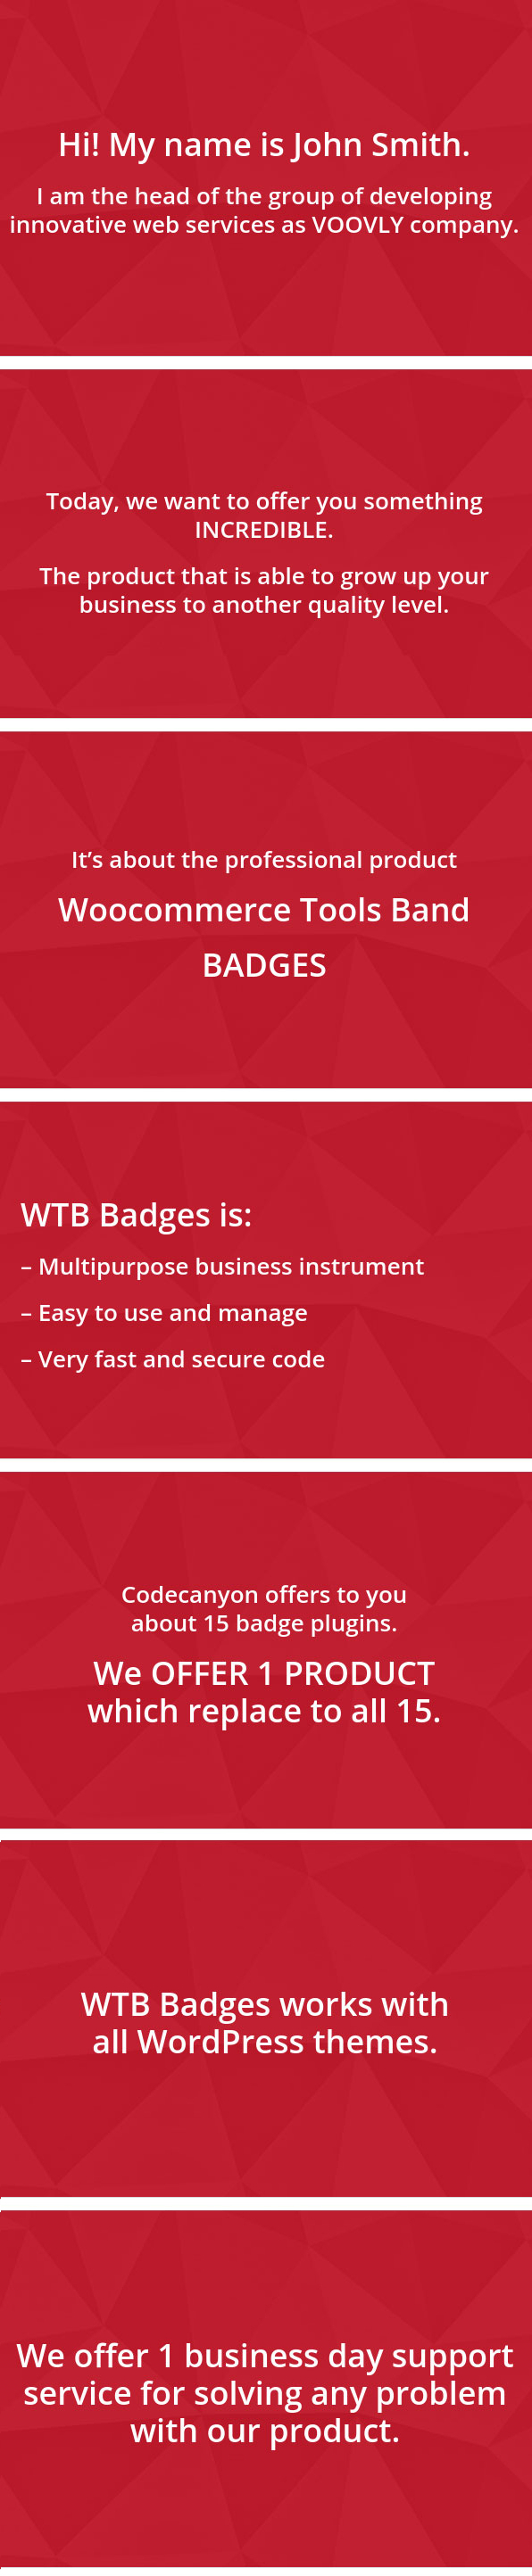 Woocommerce Tools Band: Badges + extra tools for PRO Sellers | Prosyscom Tech 2